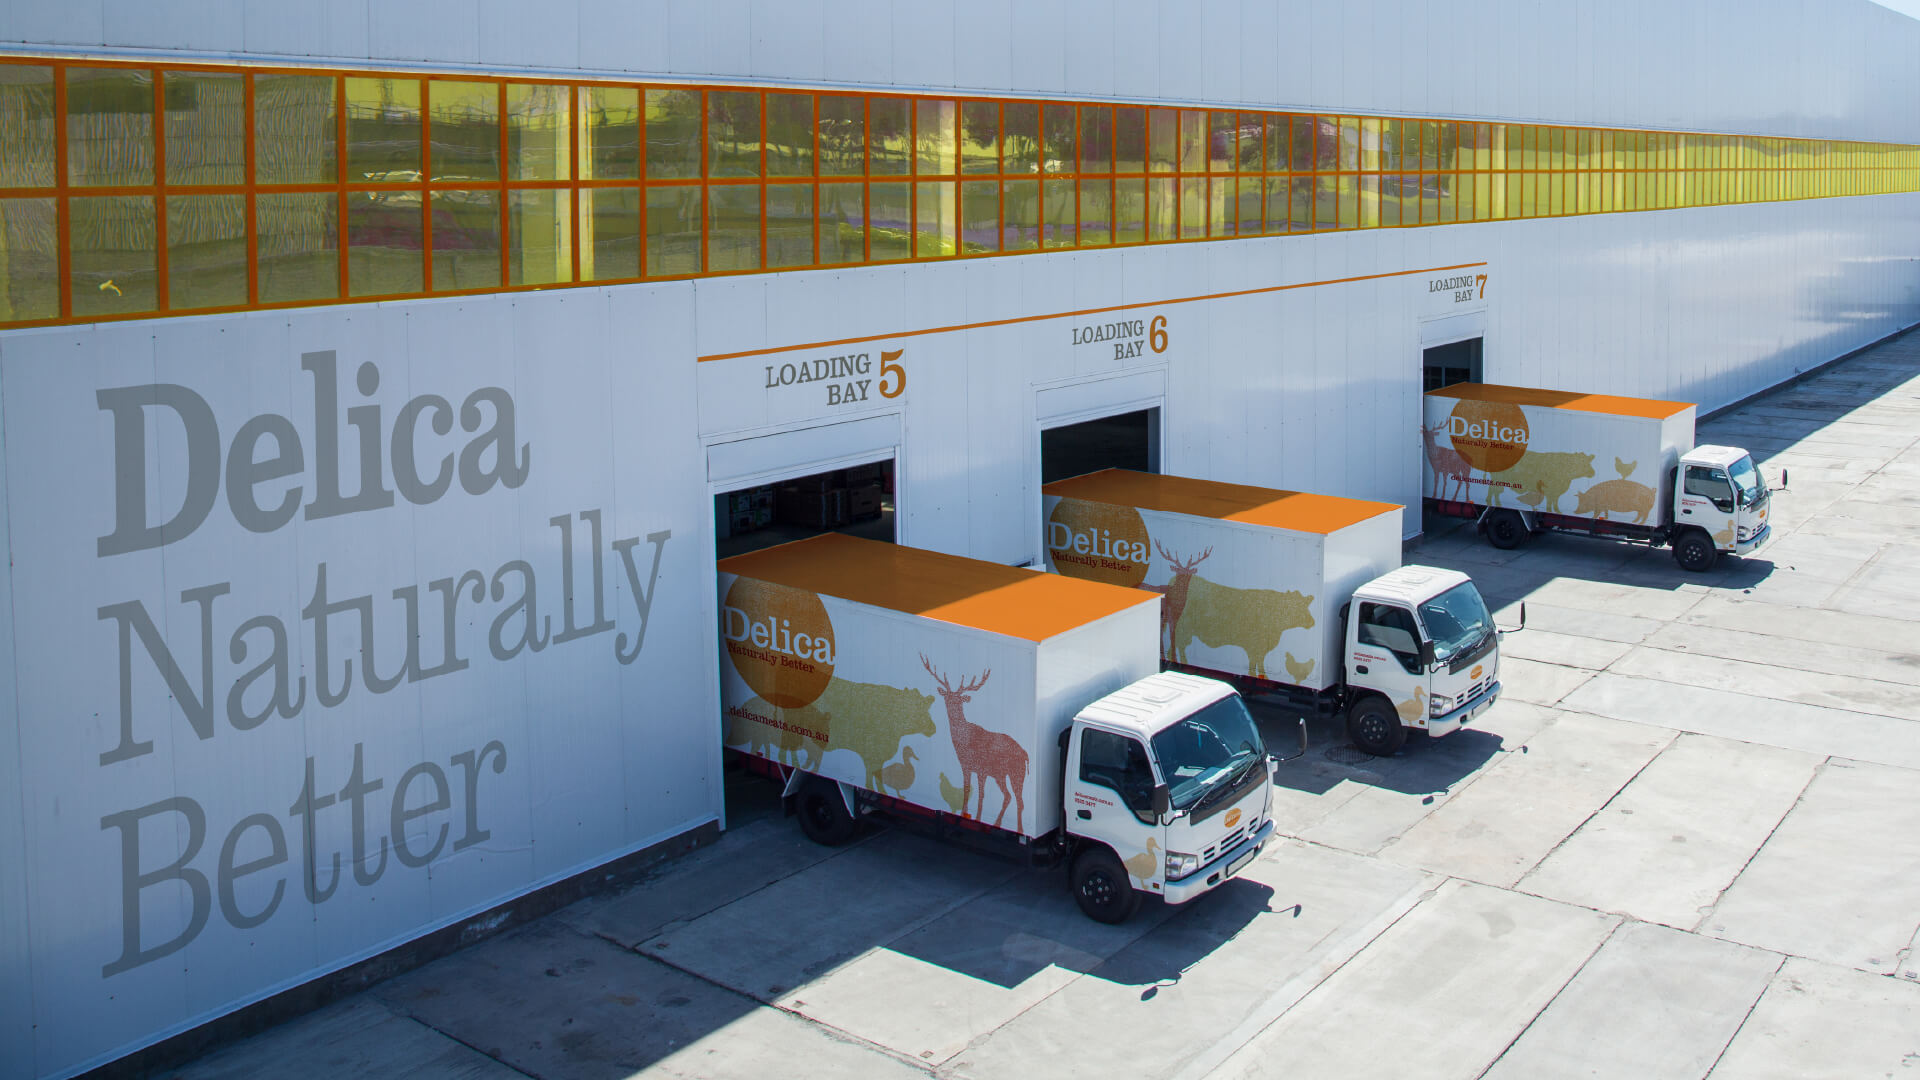 Image featuring Delica Meats delivery vehicles. 3 Delica Meats trucks awaiting deliveries outside their factory, as photographed from above. Helium Design have created a brand identity system for Delica Meats.